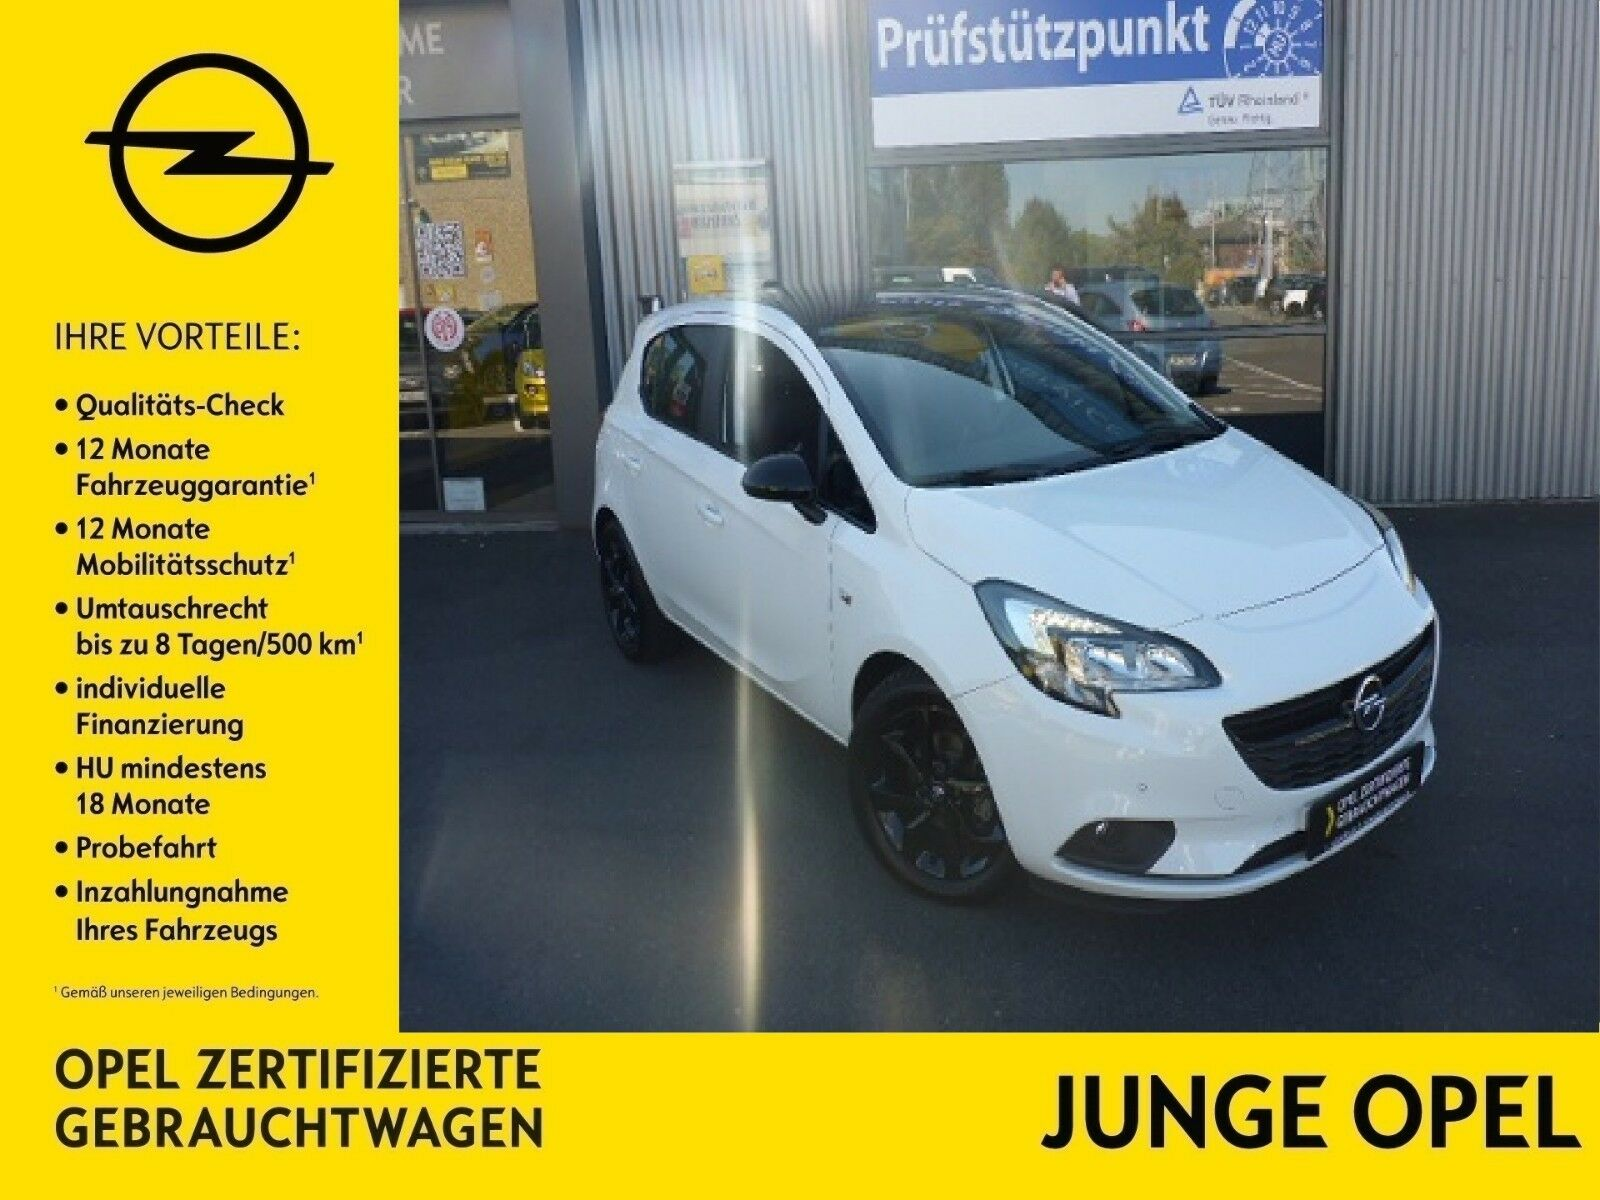 OPEL Corsa E Color Edit. 1.4 66kW (90PS) SHZ, PDC